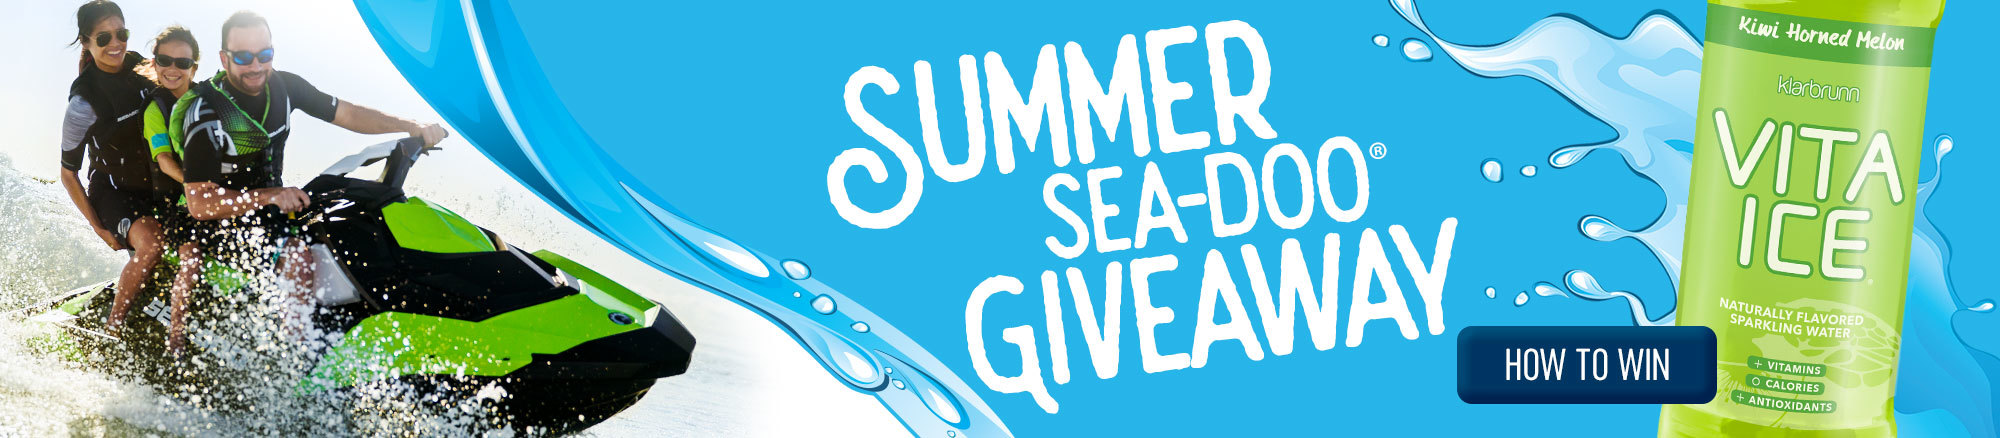 Summer Sea-Doo Giveaway - LEARN MORE